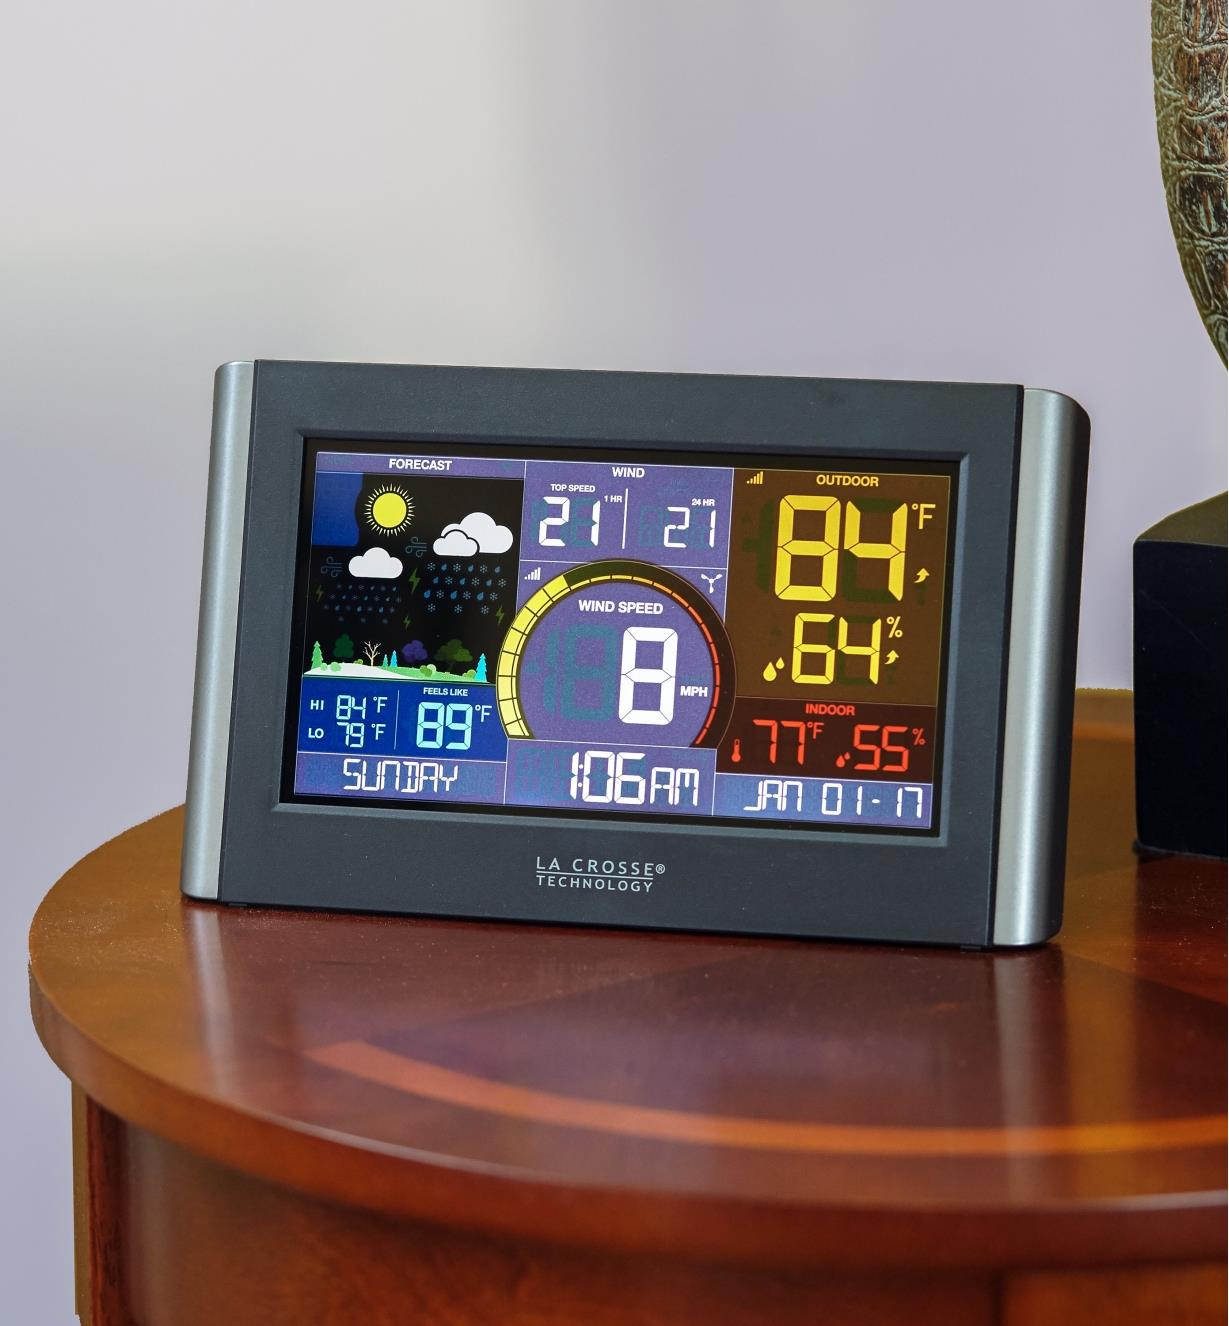 KD352 - Wi-Fi Weather Station with Wind